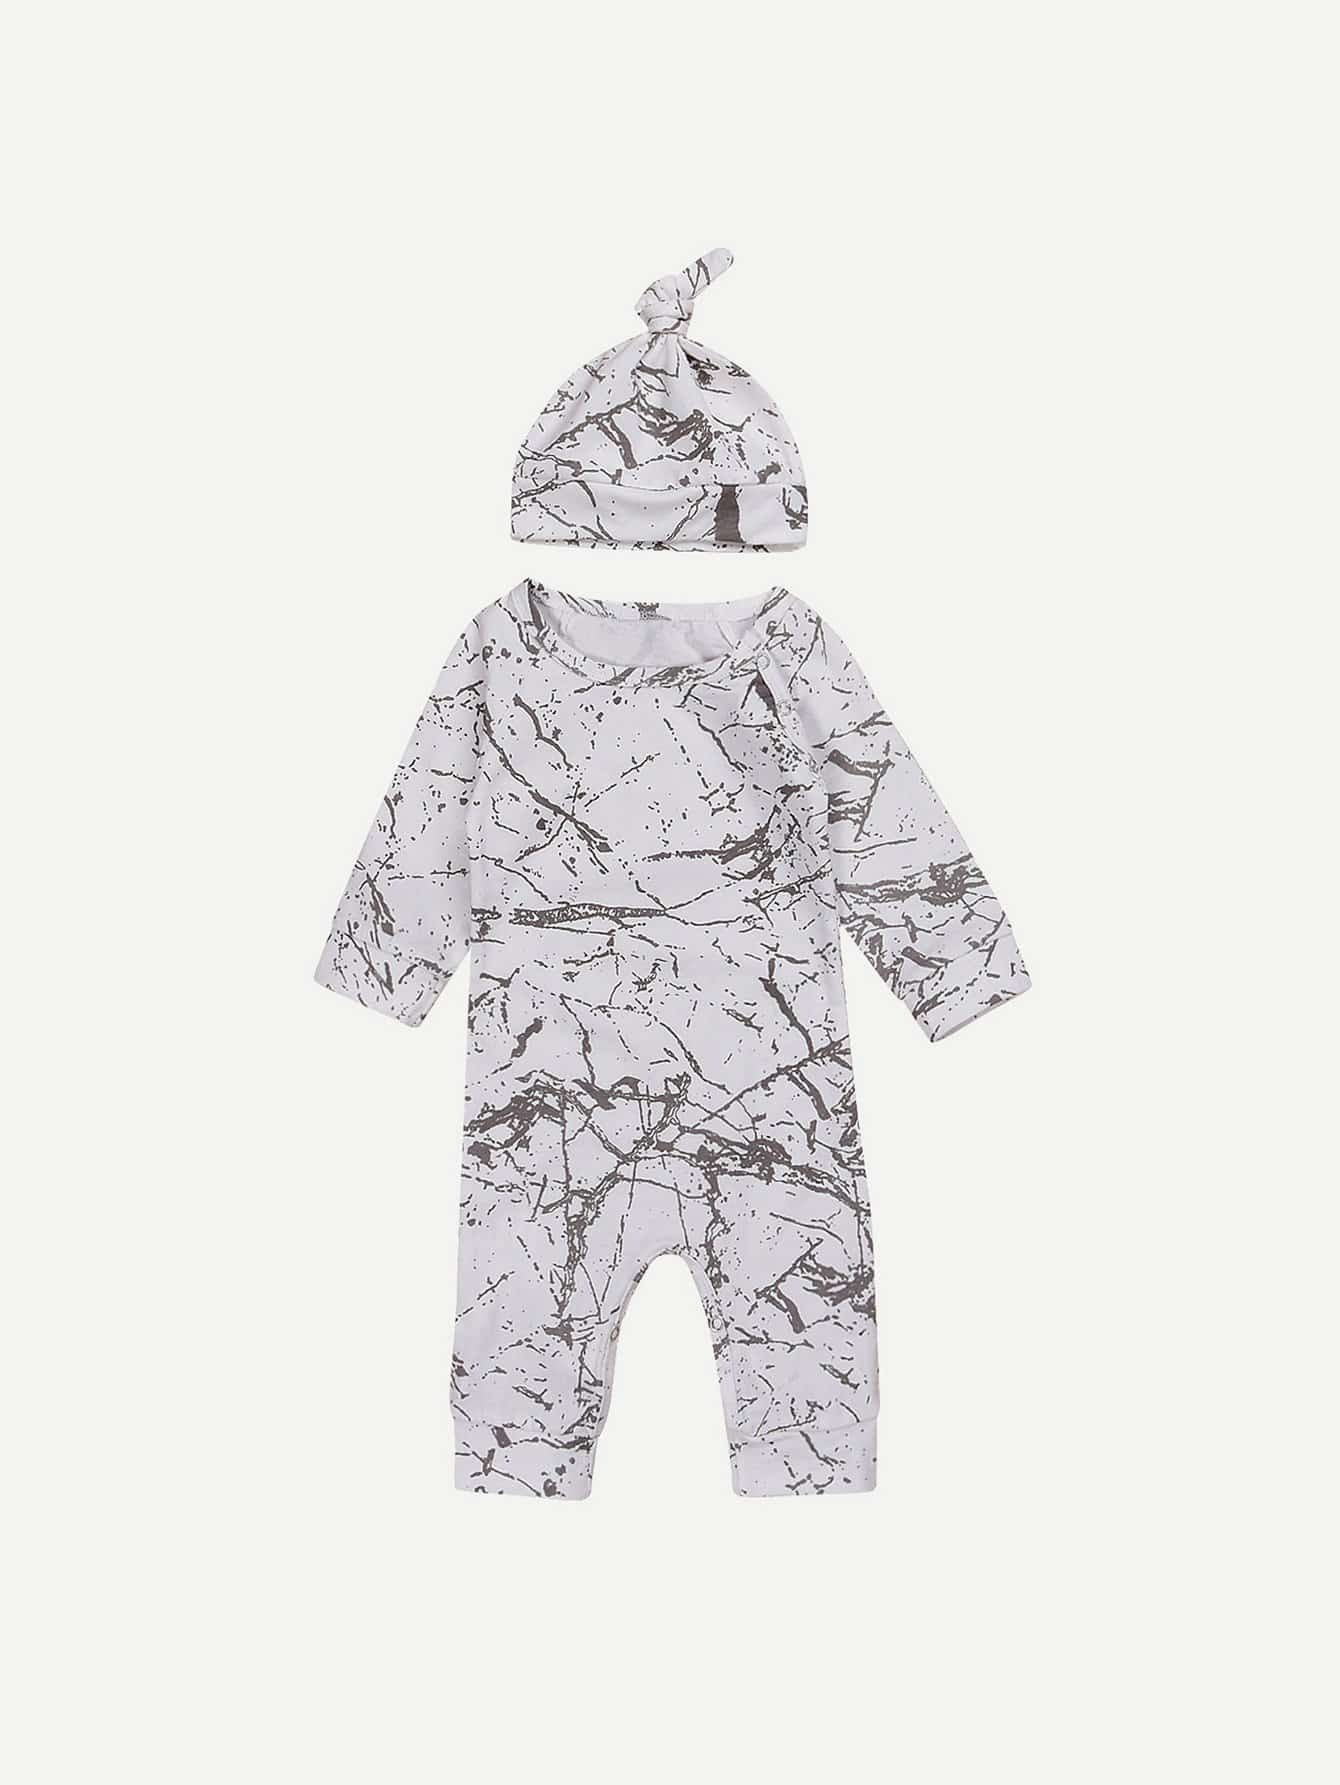 Boys Abstract Print Jumpsuits Set With Hat варочная панель gorenje ghs 64 ora w